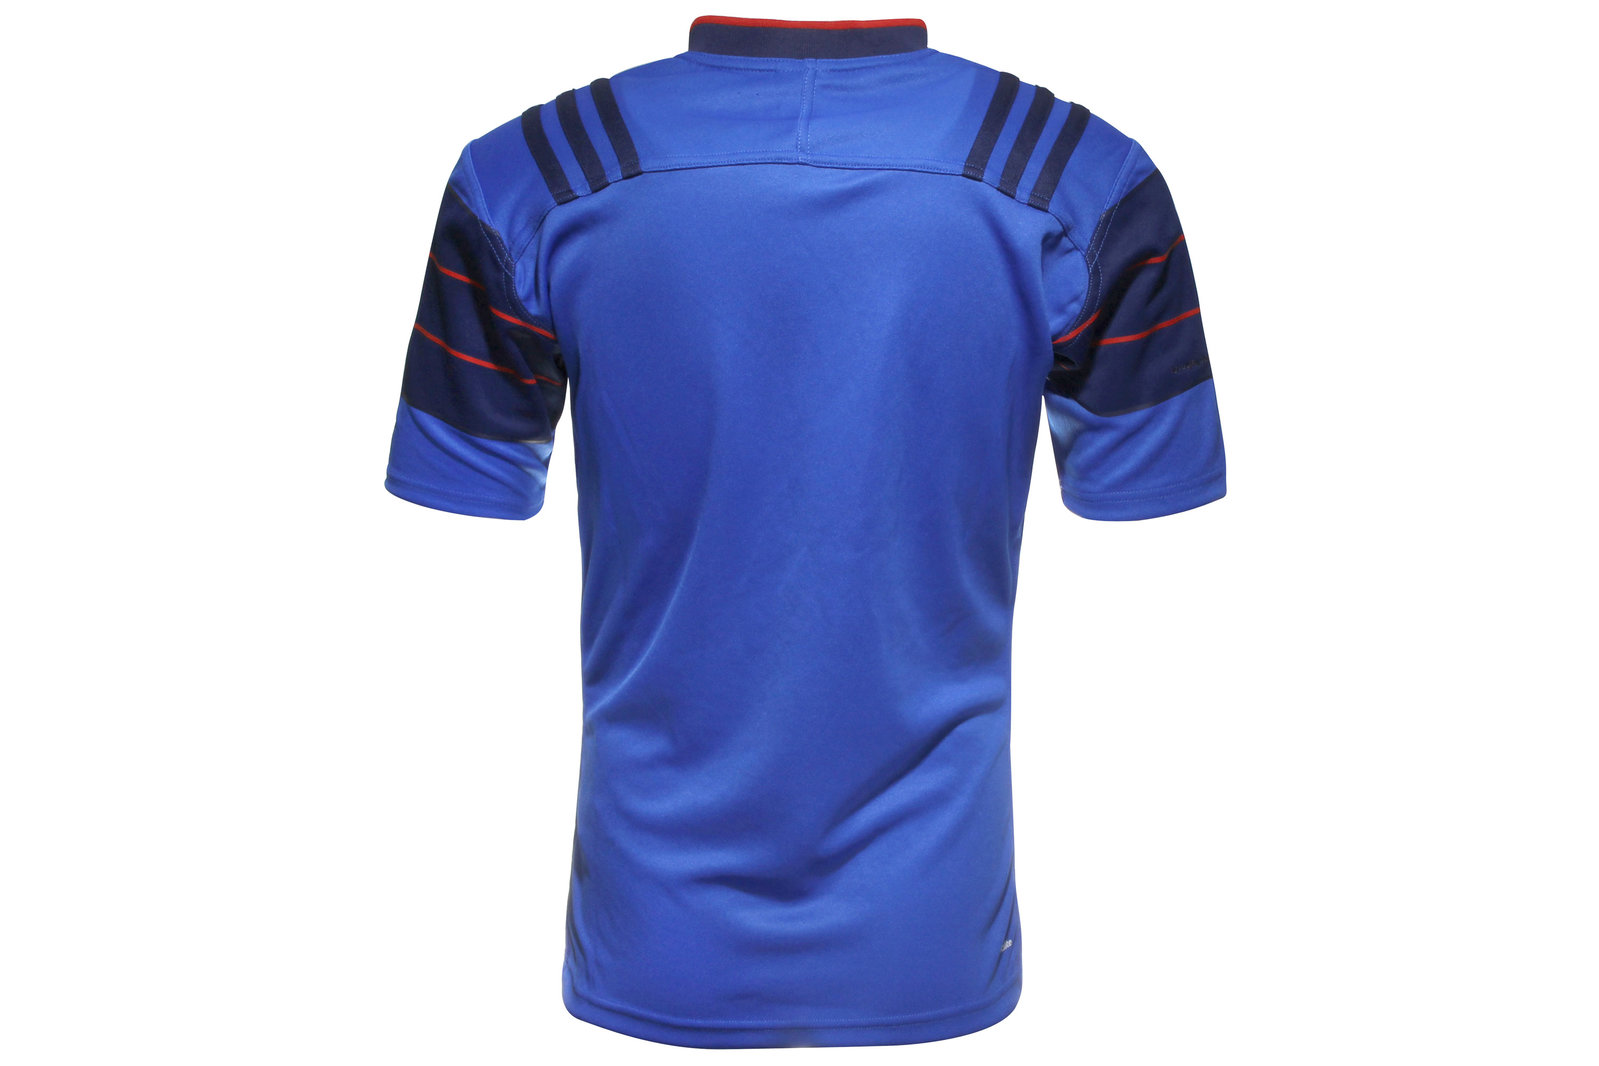 0a6ac193e27 adidas Mens France 2015 16 Home S S Replica Rugby Shirt Top Sports Training